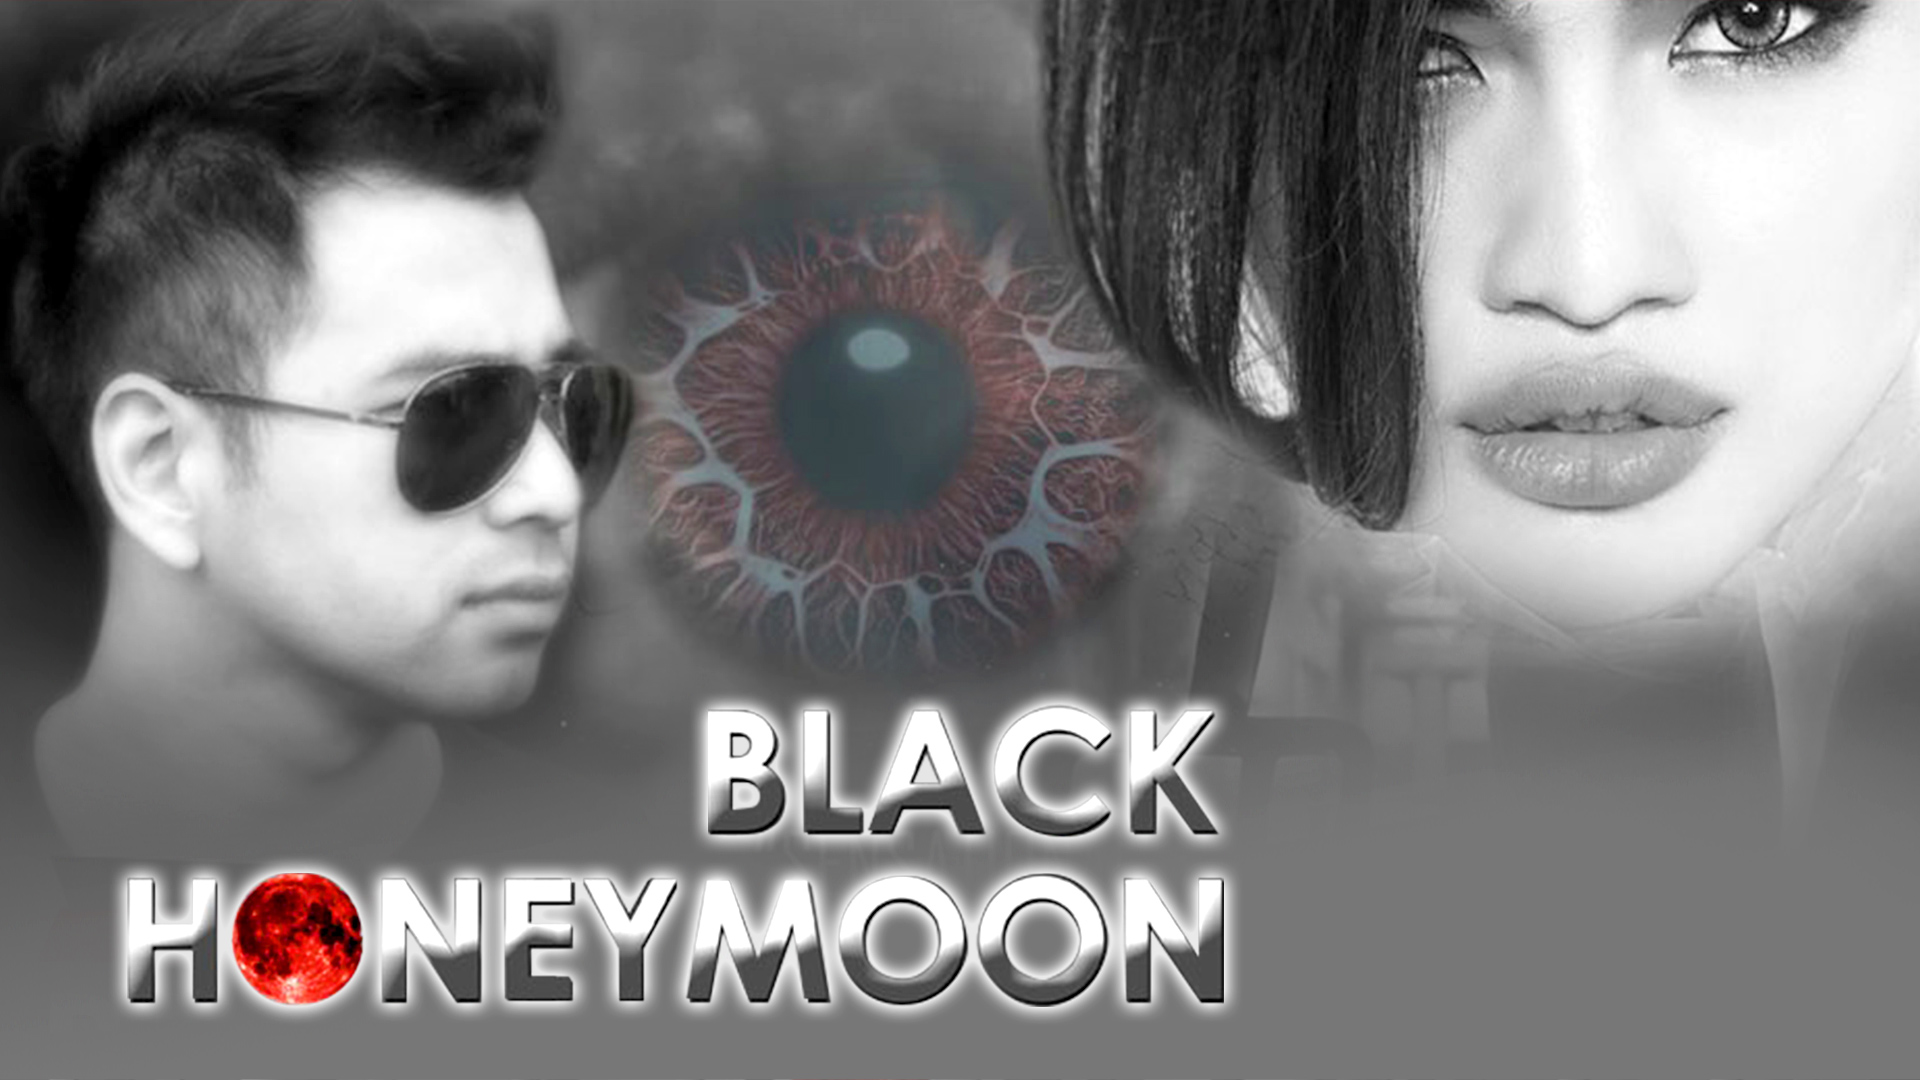 BLACK HONEYMOON